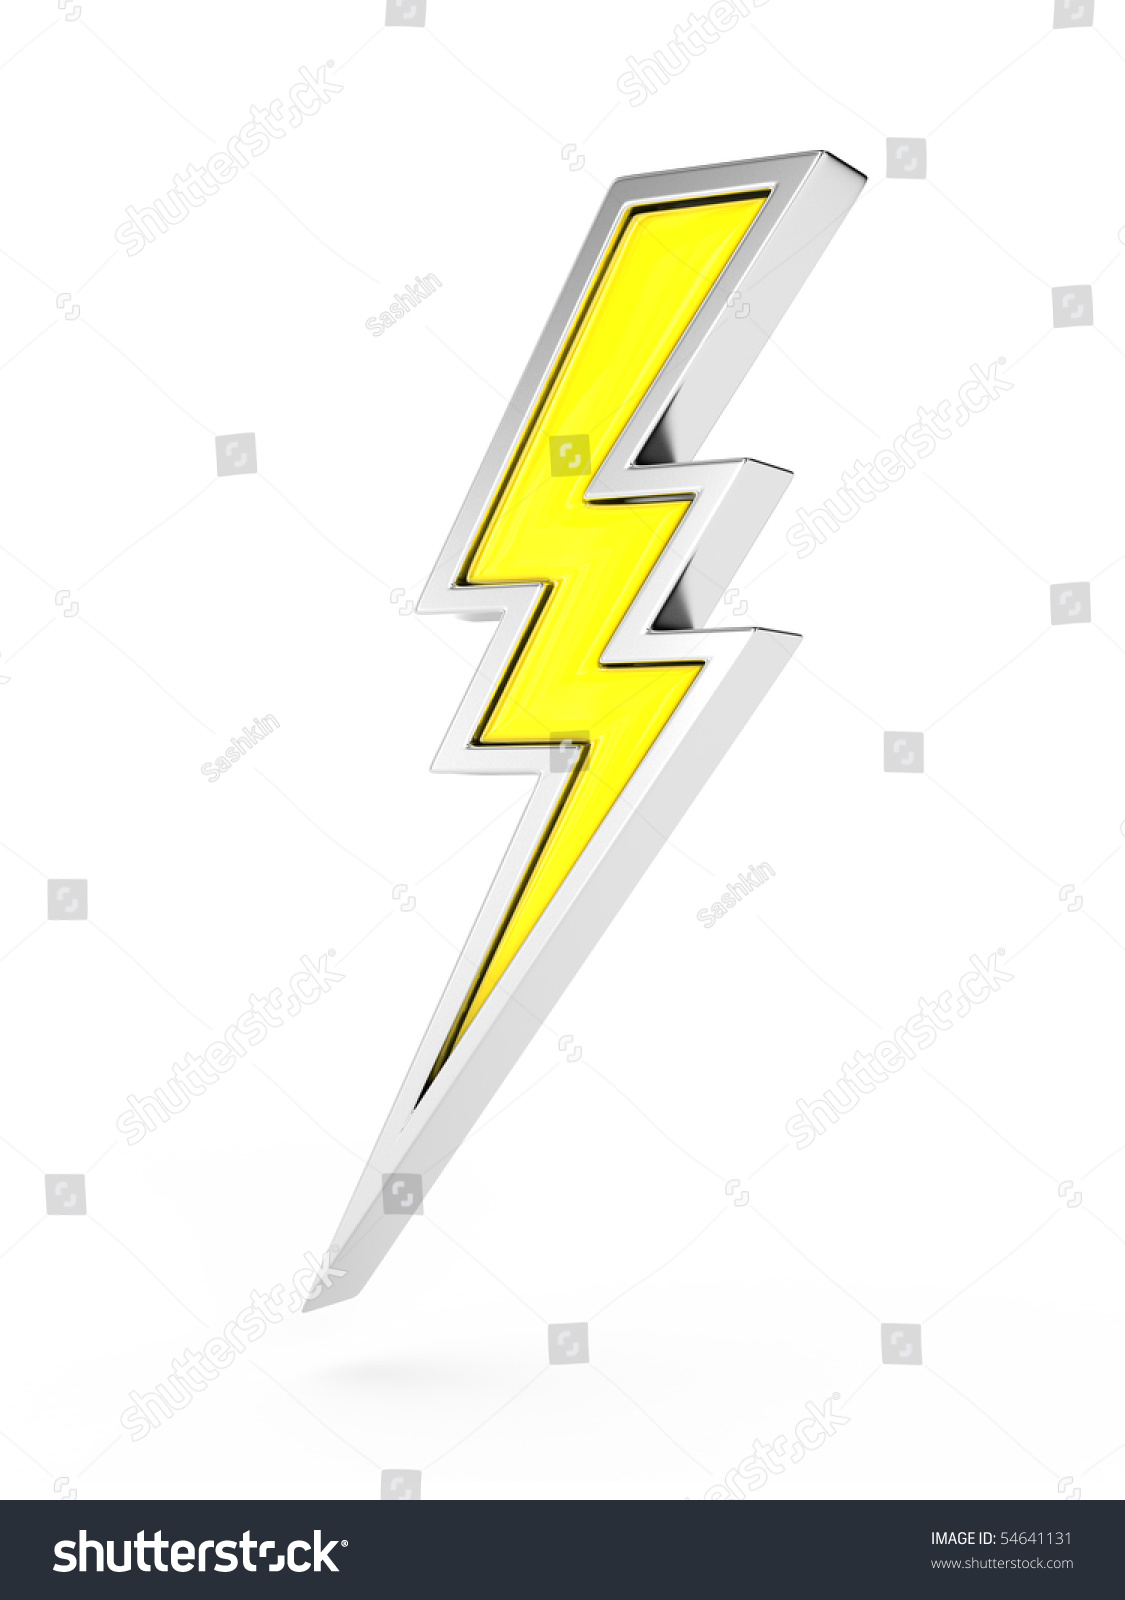 Red lightning bolt symbol home design game hay lightning bolt symbol stock photo 54641131 shutterstock buycottarizona Image collections